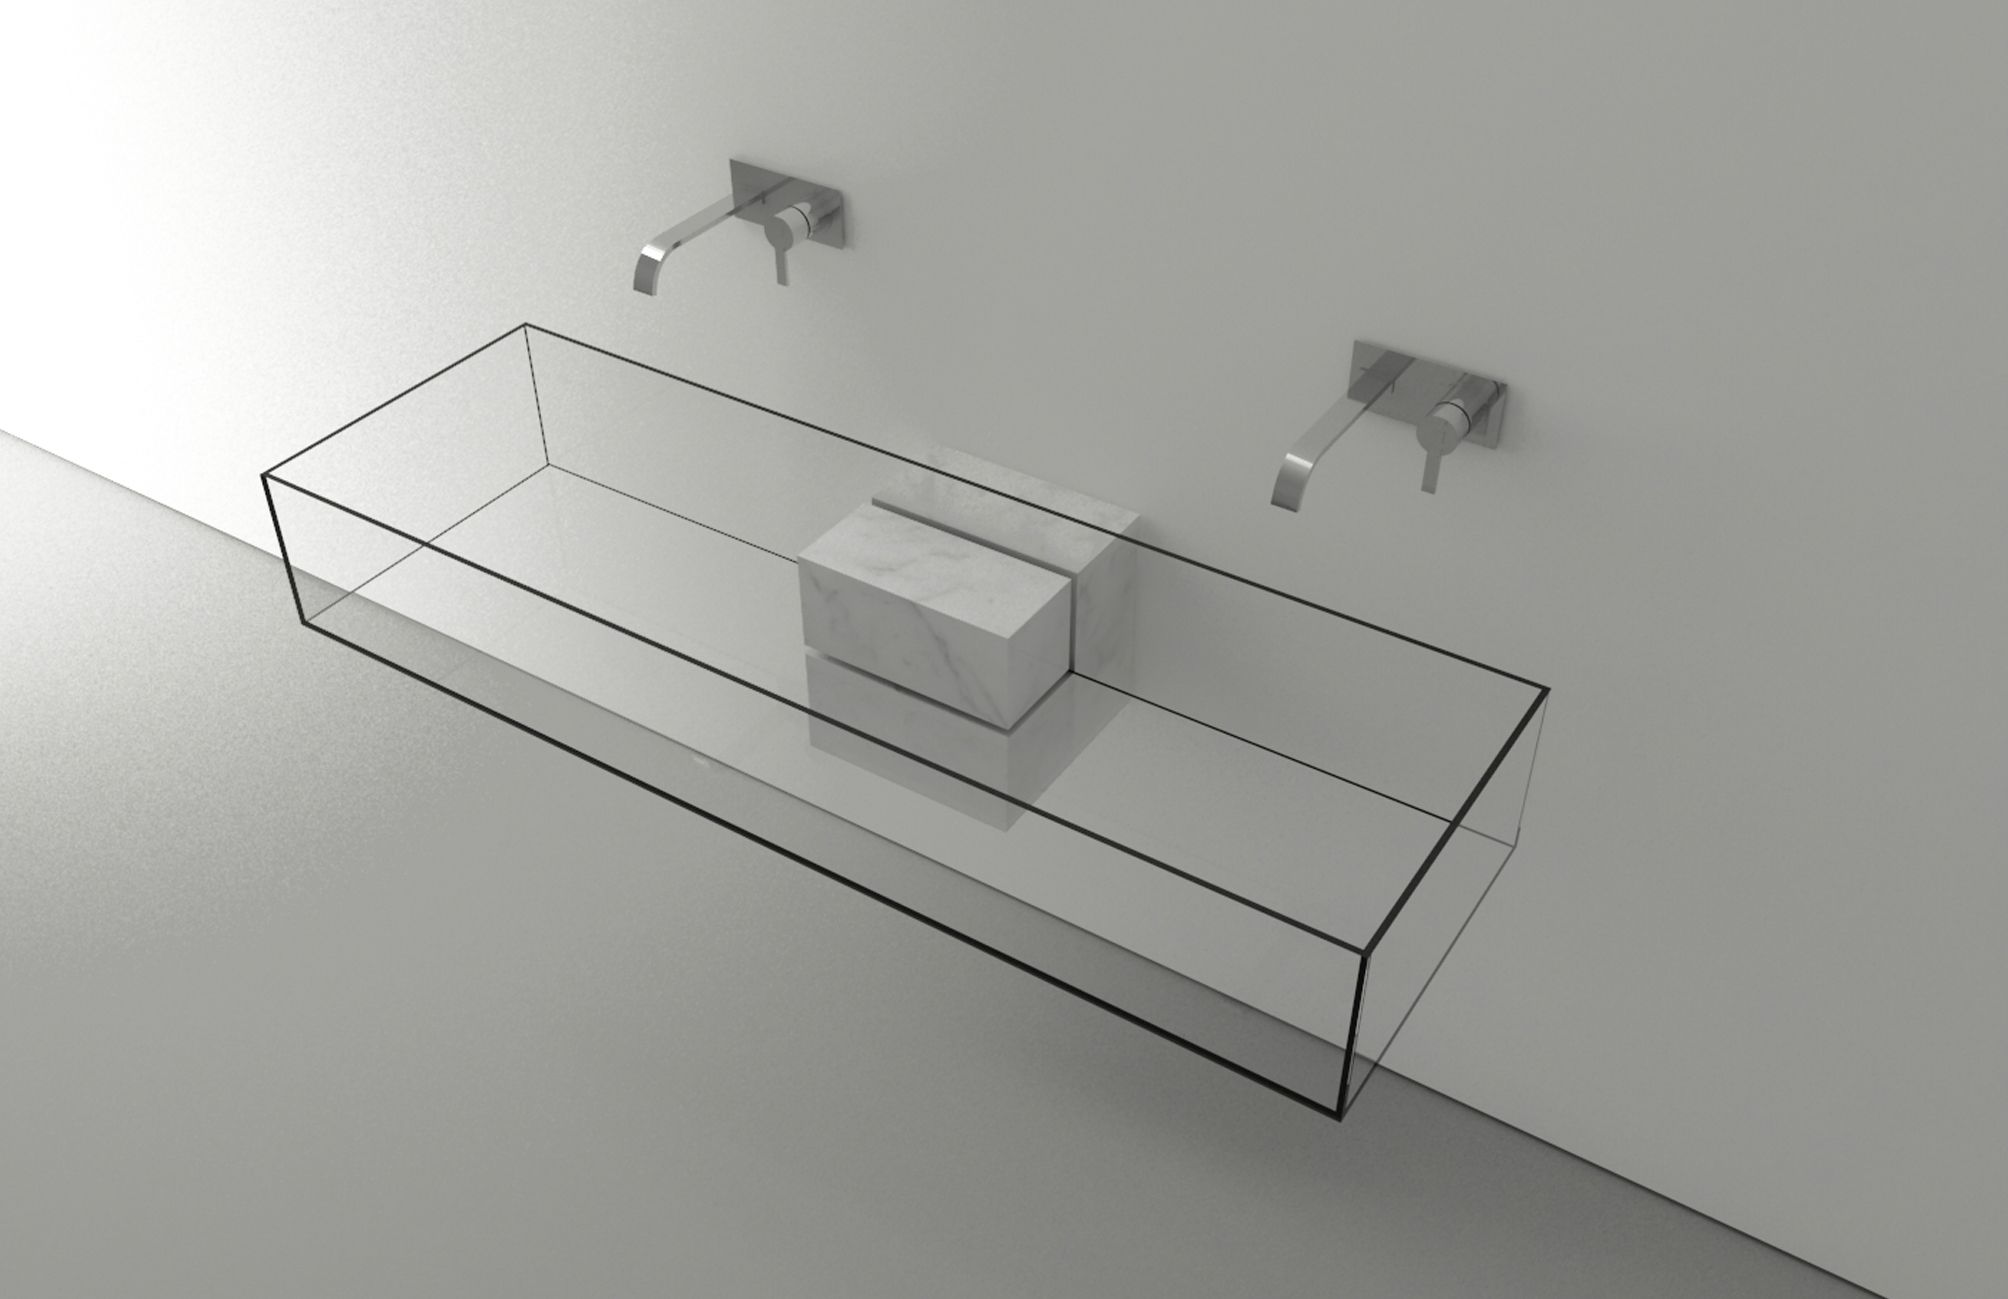 KUB Invisible Sink By Victor Vasilev Architects Interiority - Almost invisible minimalist kub bathroom sink by victor vasilev